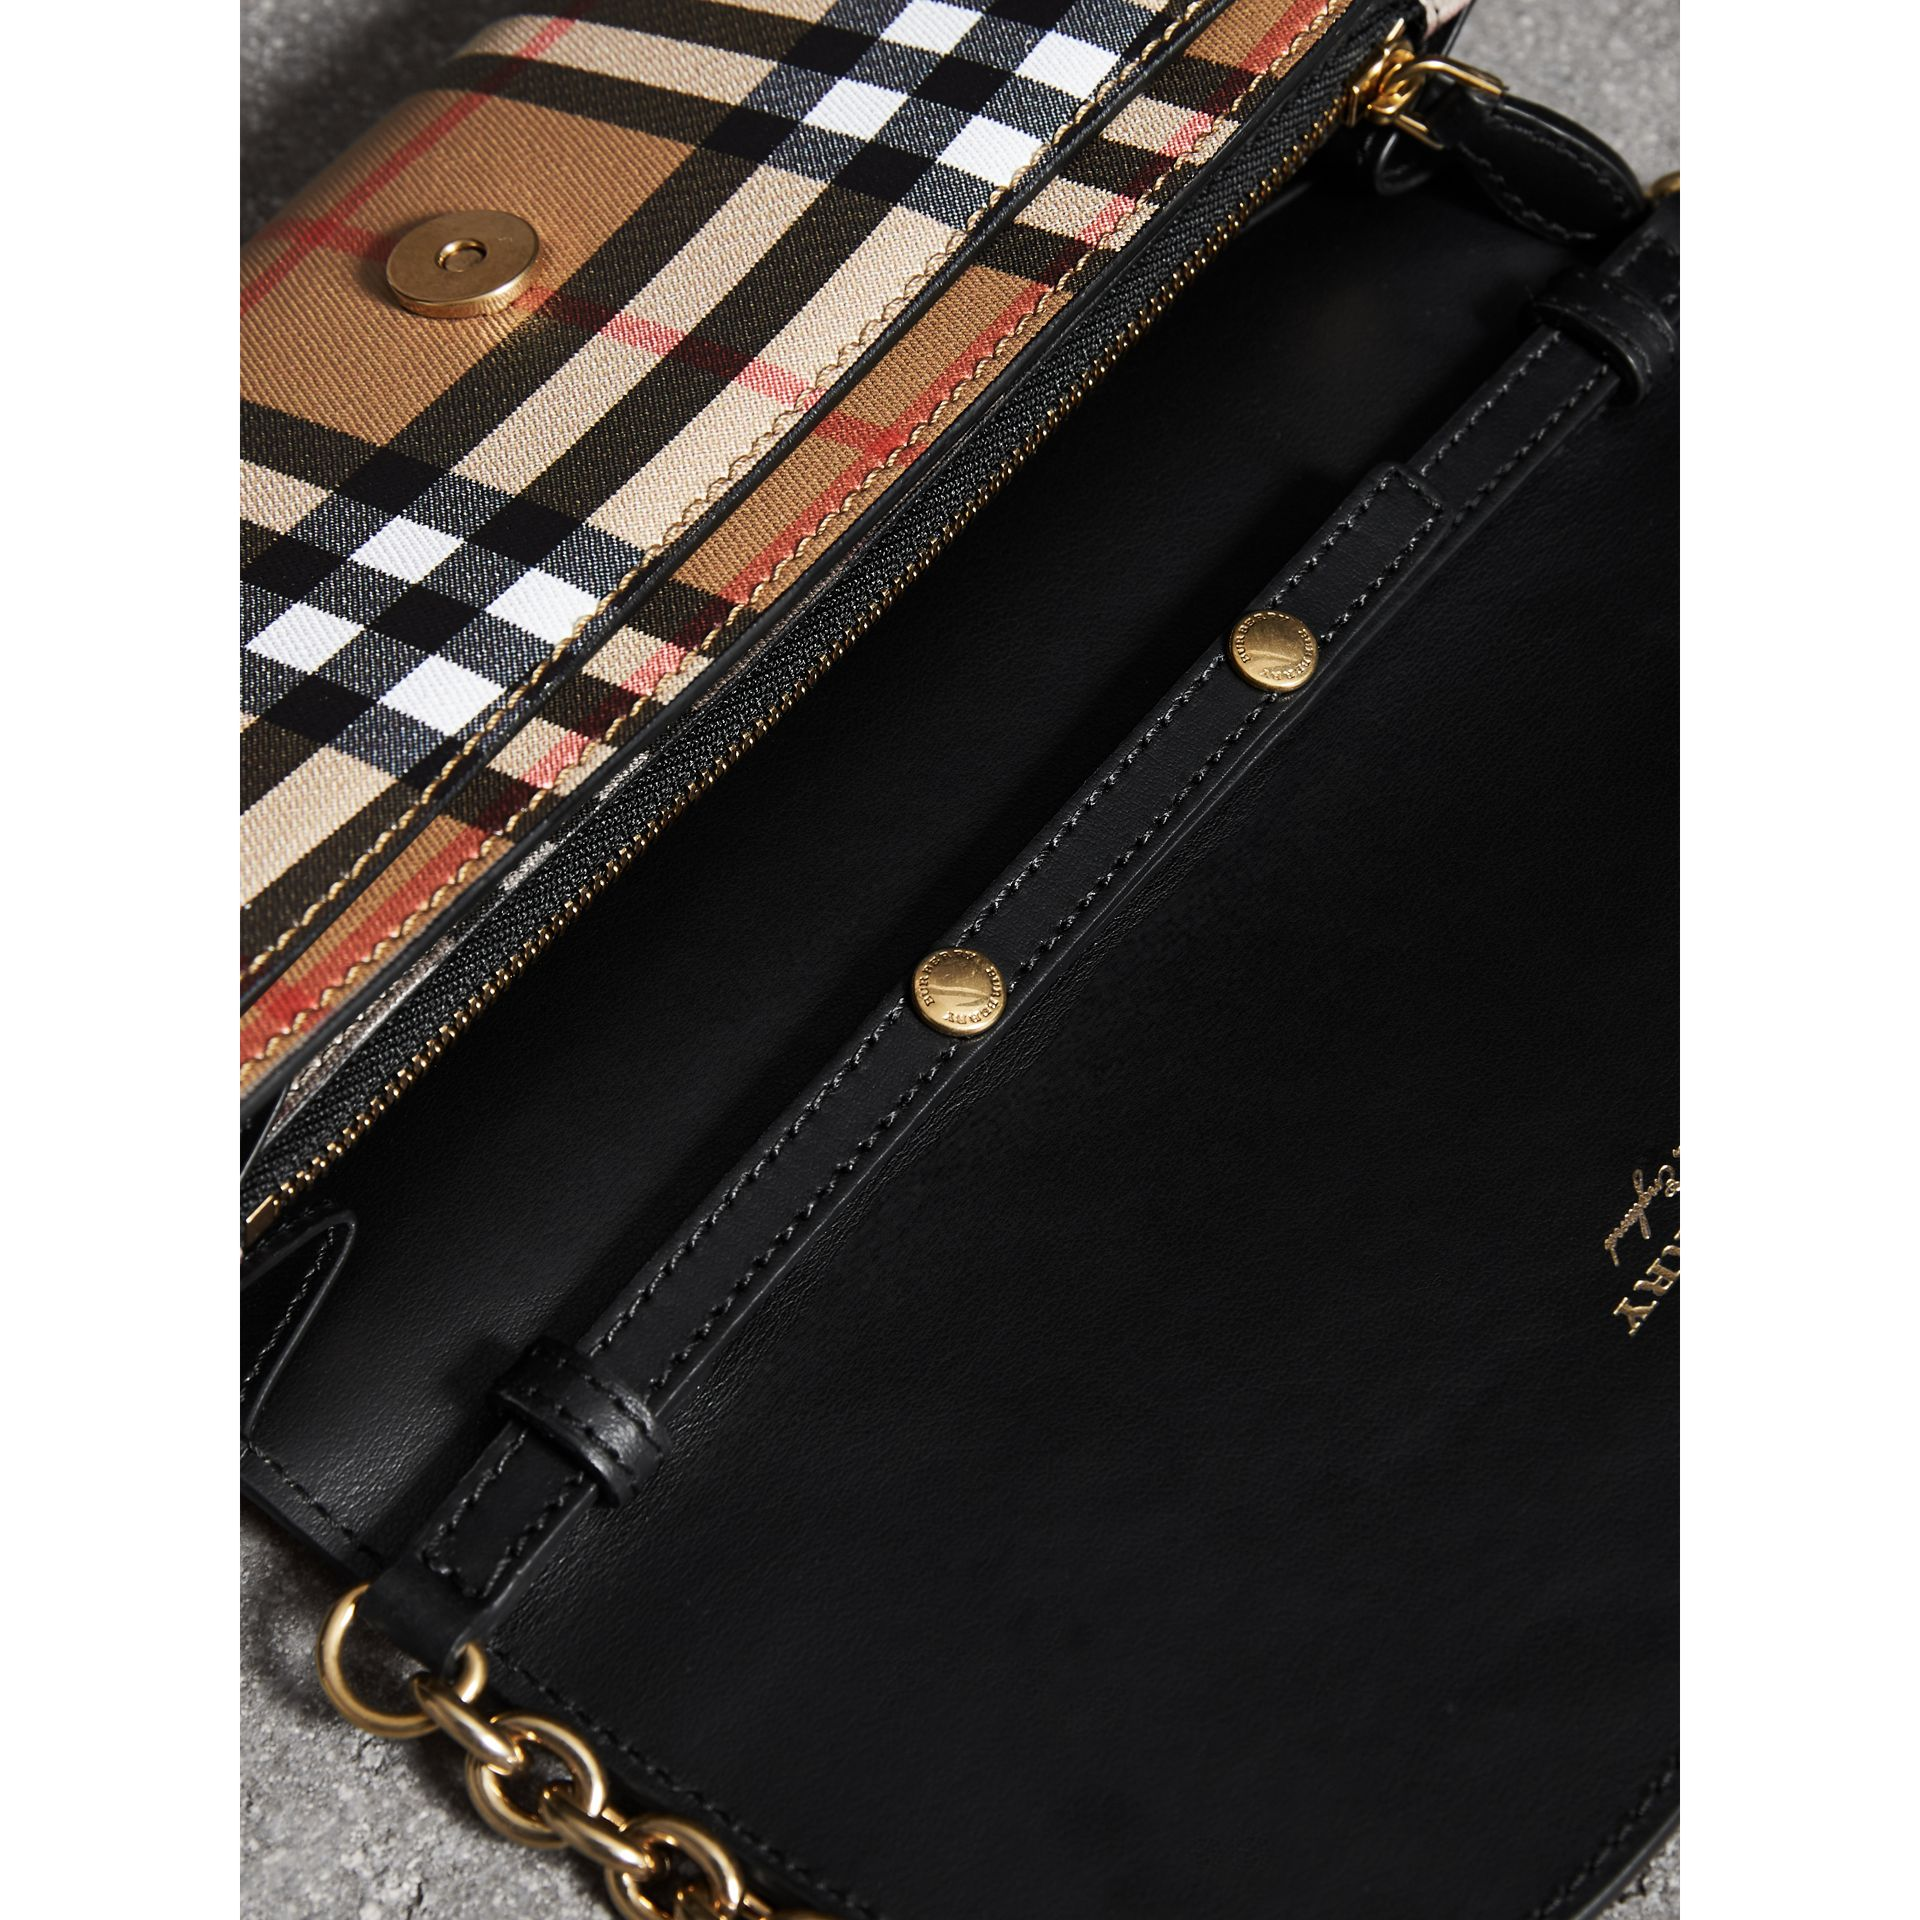 Vintage Check and Leather Wallet with Chain in Black - Women | Burberry United Kingdom - gallery image 5